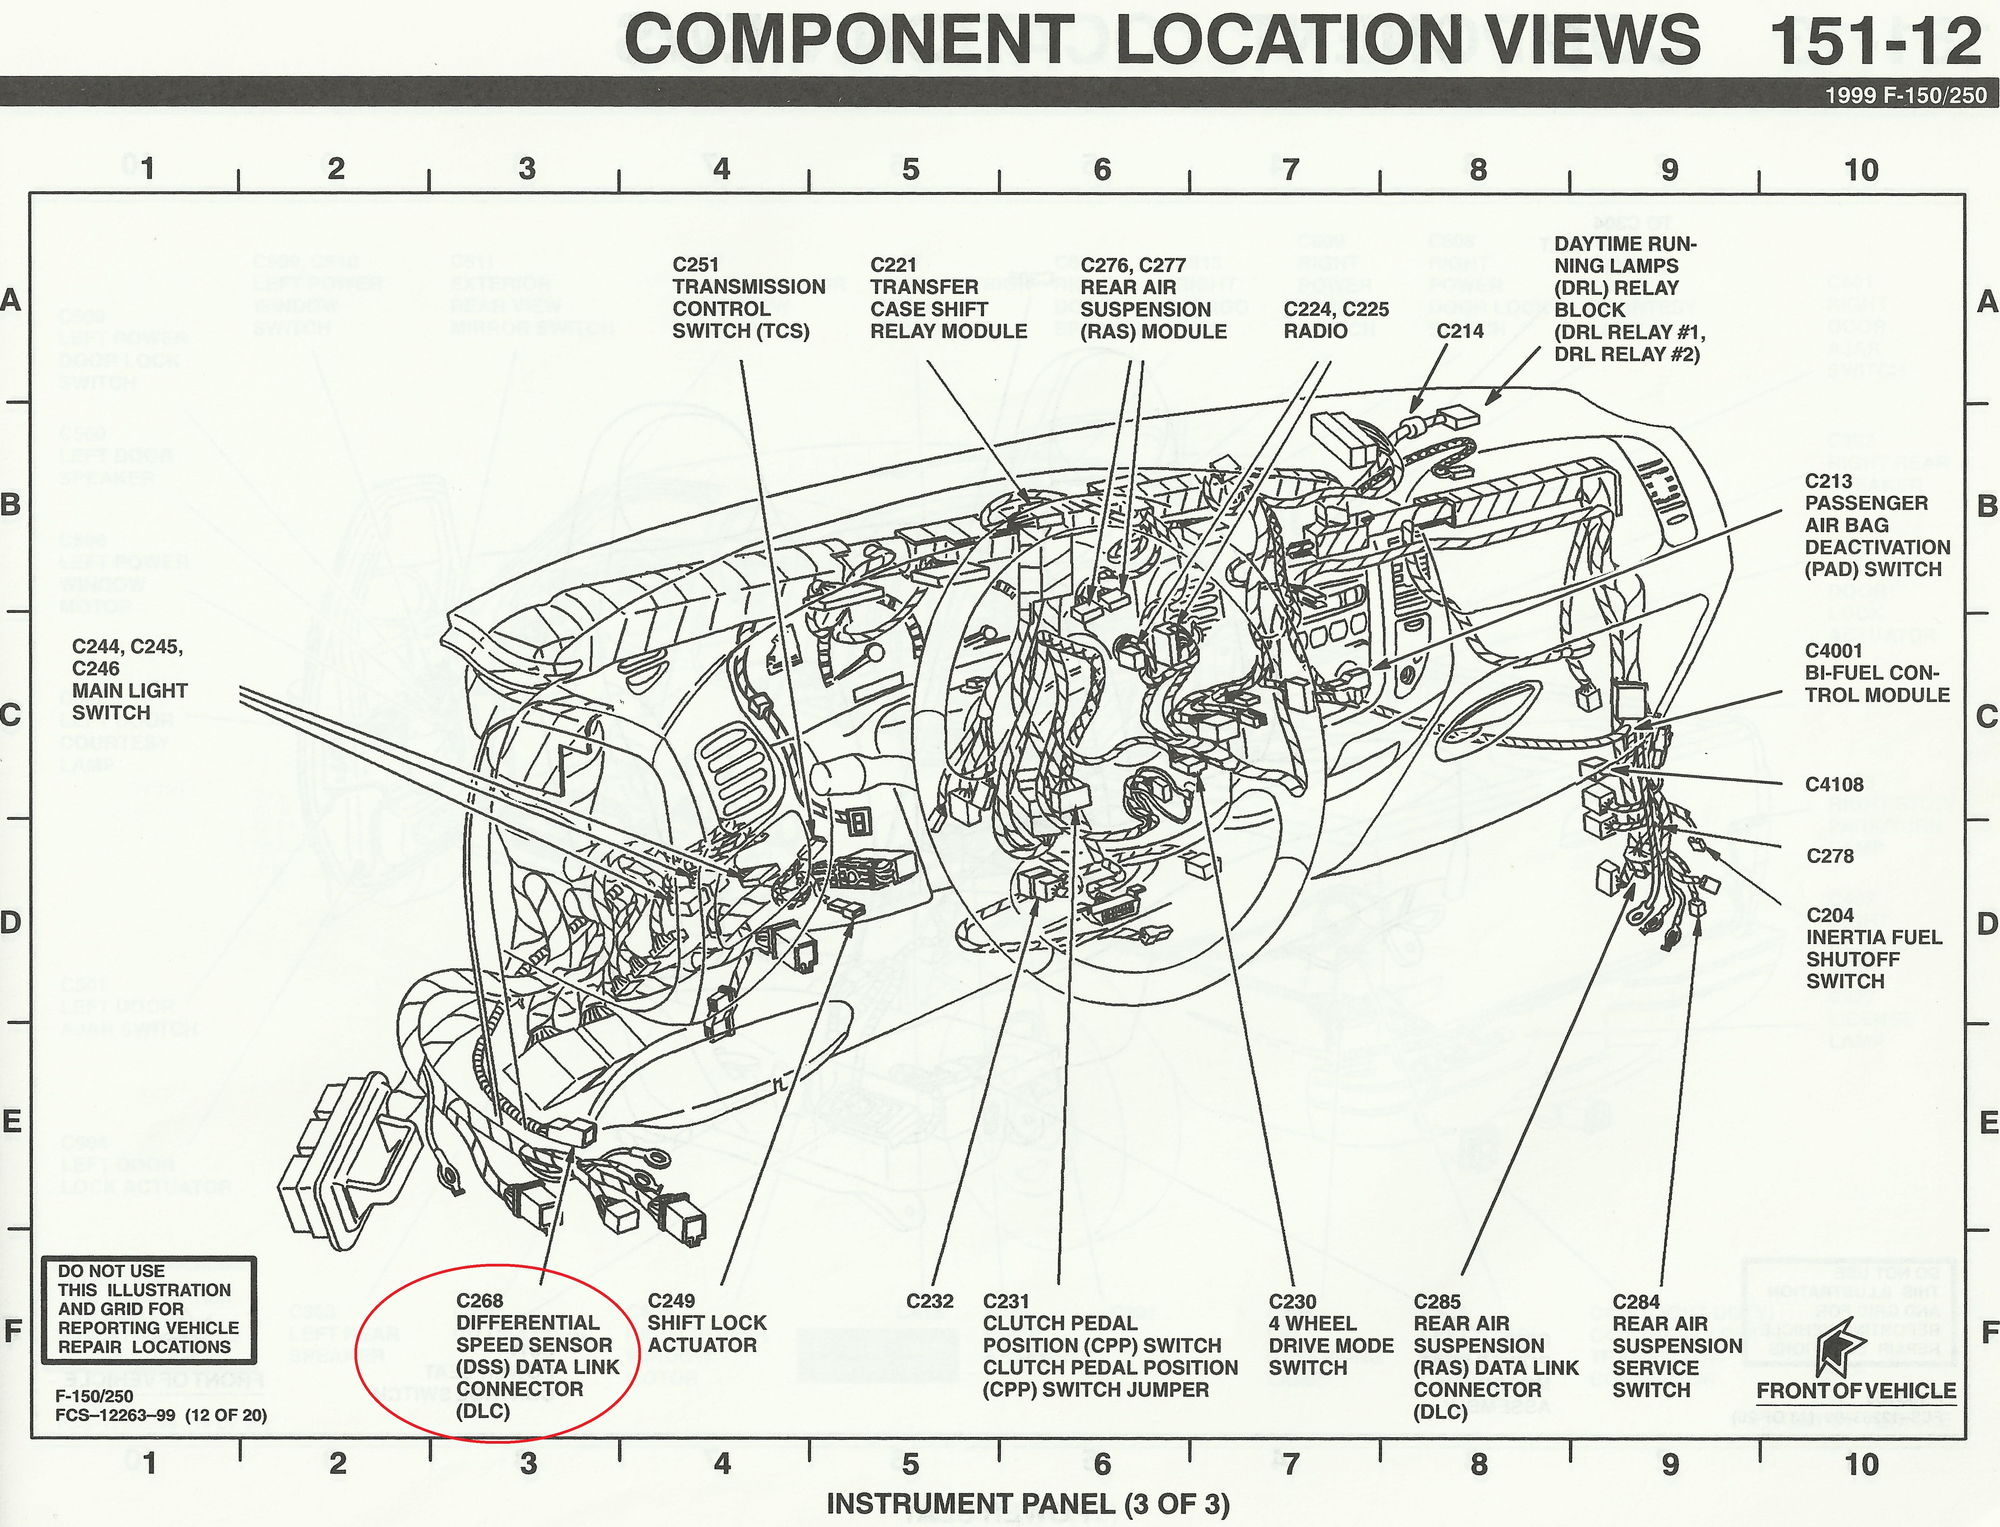 1992 Ford F150 Trailer Plug Wiring Diagram. 1992